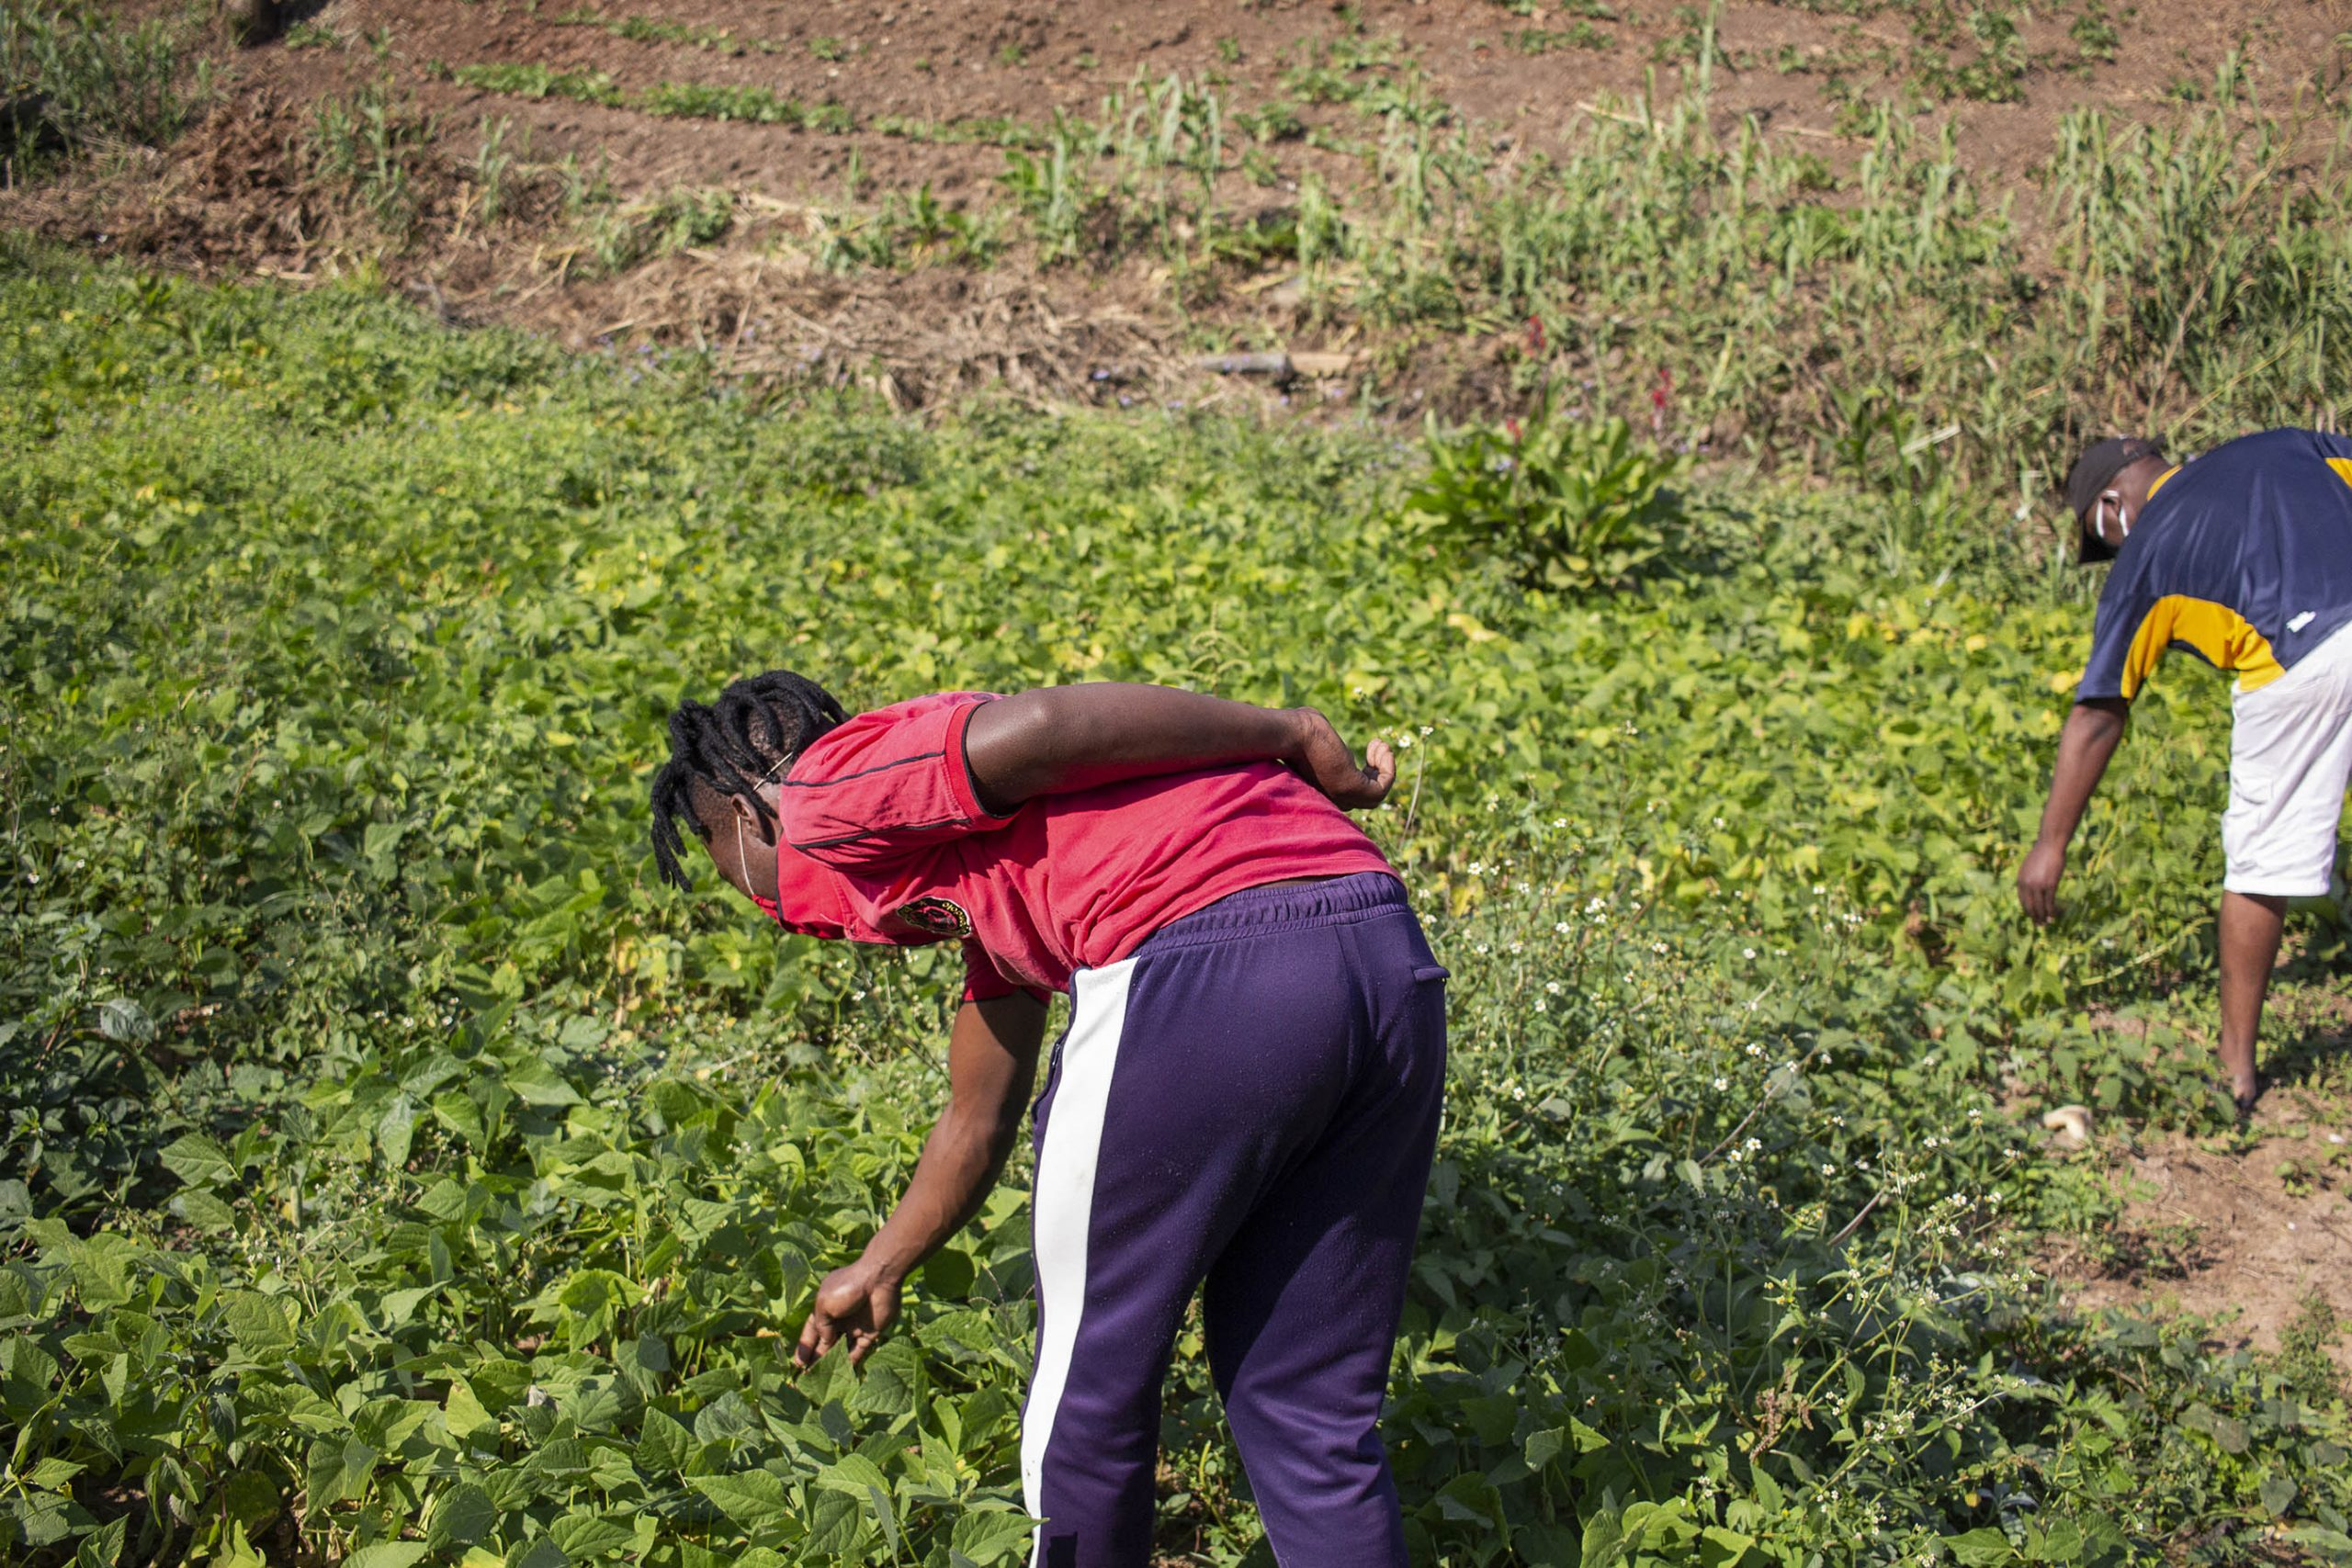 9 June 2020: Being unemployed, 28-year-old Yongama Nonkula has been putting all his effort into the garden, which produces vegetables such as amadumbe, sweet potato, spinach, butternut and cabbage.